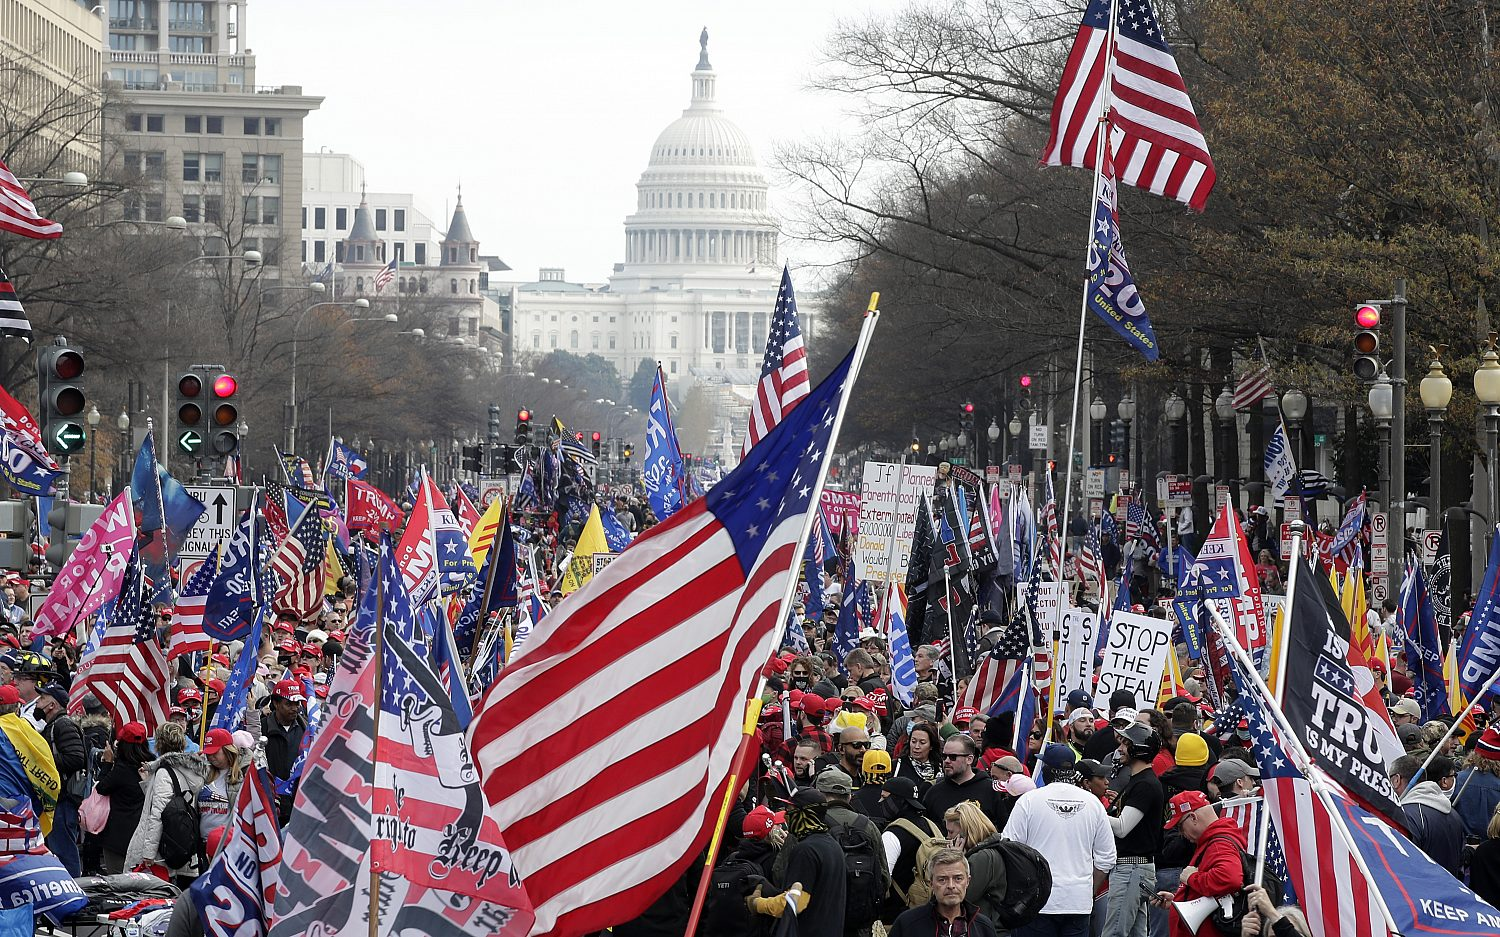 Trump supporters hold Jericho March in Washington